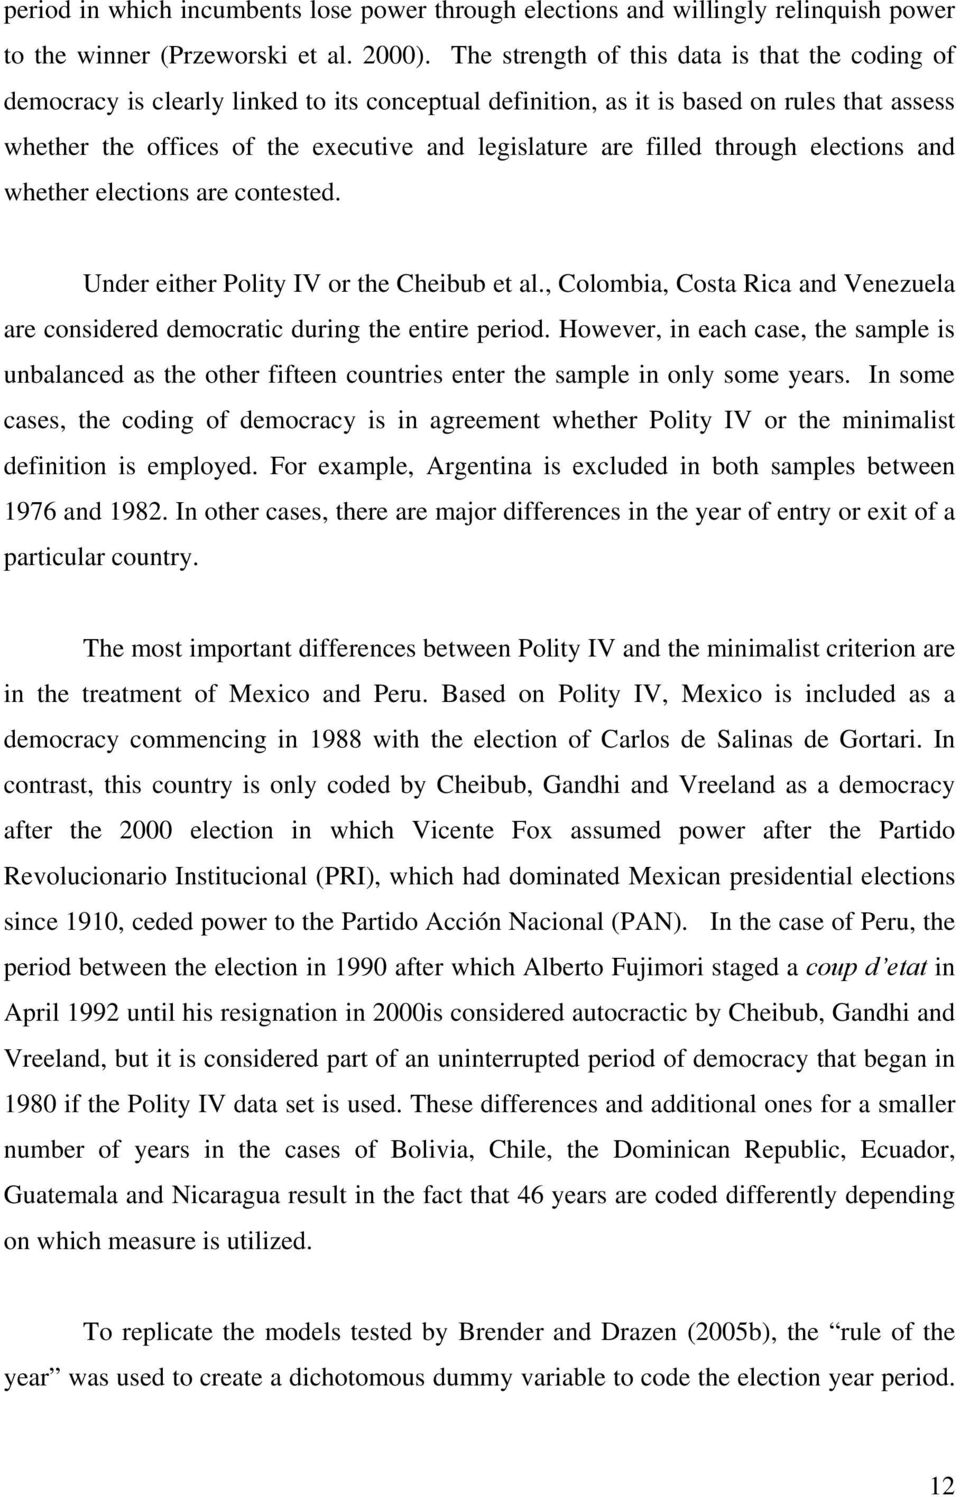 filled through elections and whether elections are contested. Under either Polity IV or the Cheibub et al., Colombia, Costa Rica and Venezuela are considered democratic during the entire period.